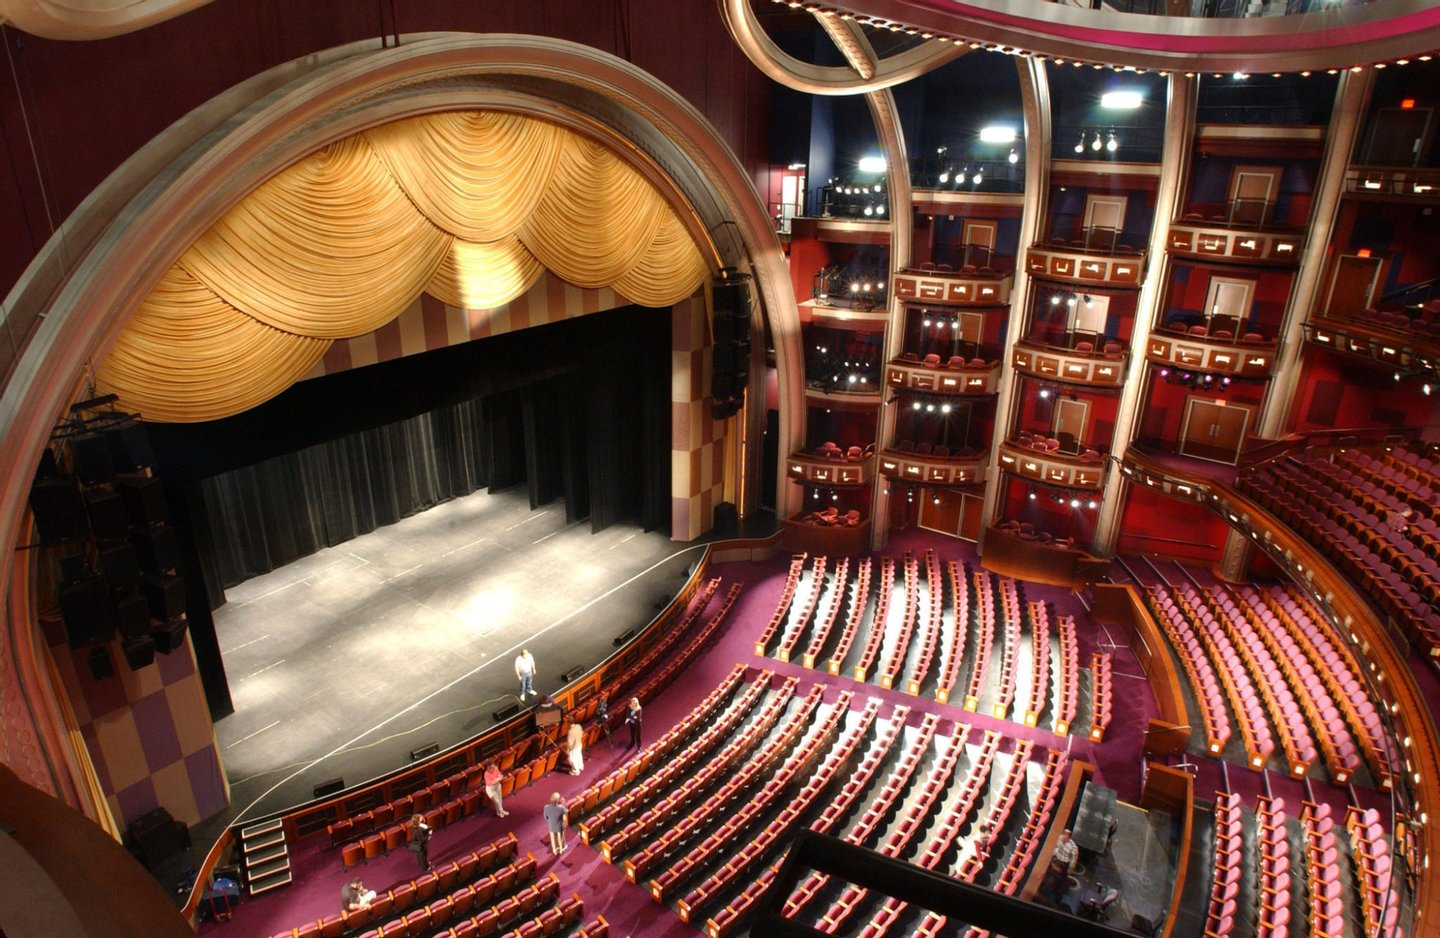 LOS ANGELES, UNITED STATES: The Kodak Theatre is shown from the seats where the Academy Awards guests will sit, in Los Angeles, CA, 06 February 2002. The 180,000 square-foot, 3300-seat theater will host the Oscars for the first time 24 March 2002. AFP PHOTO/Lucy NICHOLSON (Photo credit should read LUCY NICHOLSON/AFP/Getty Images)